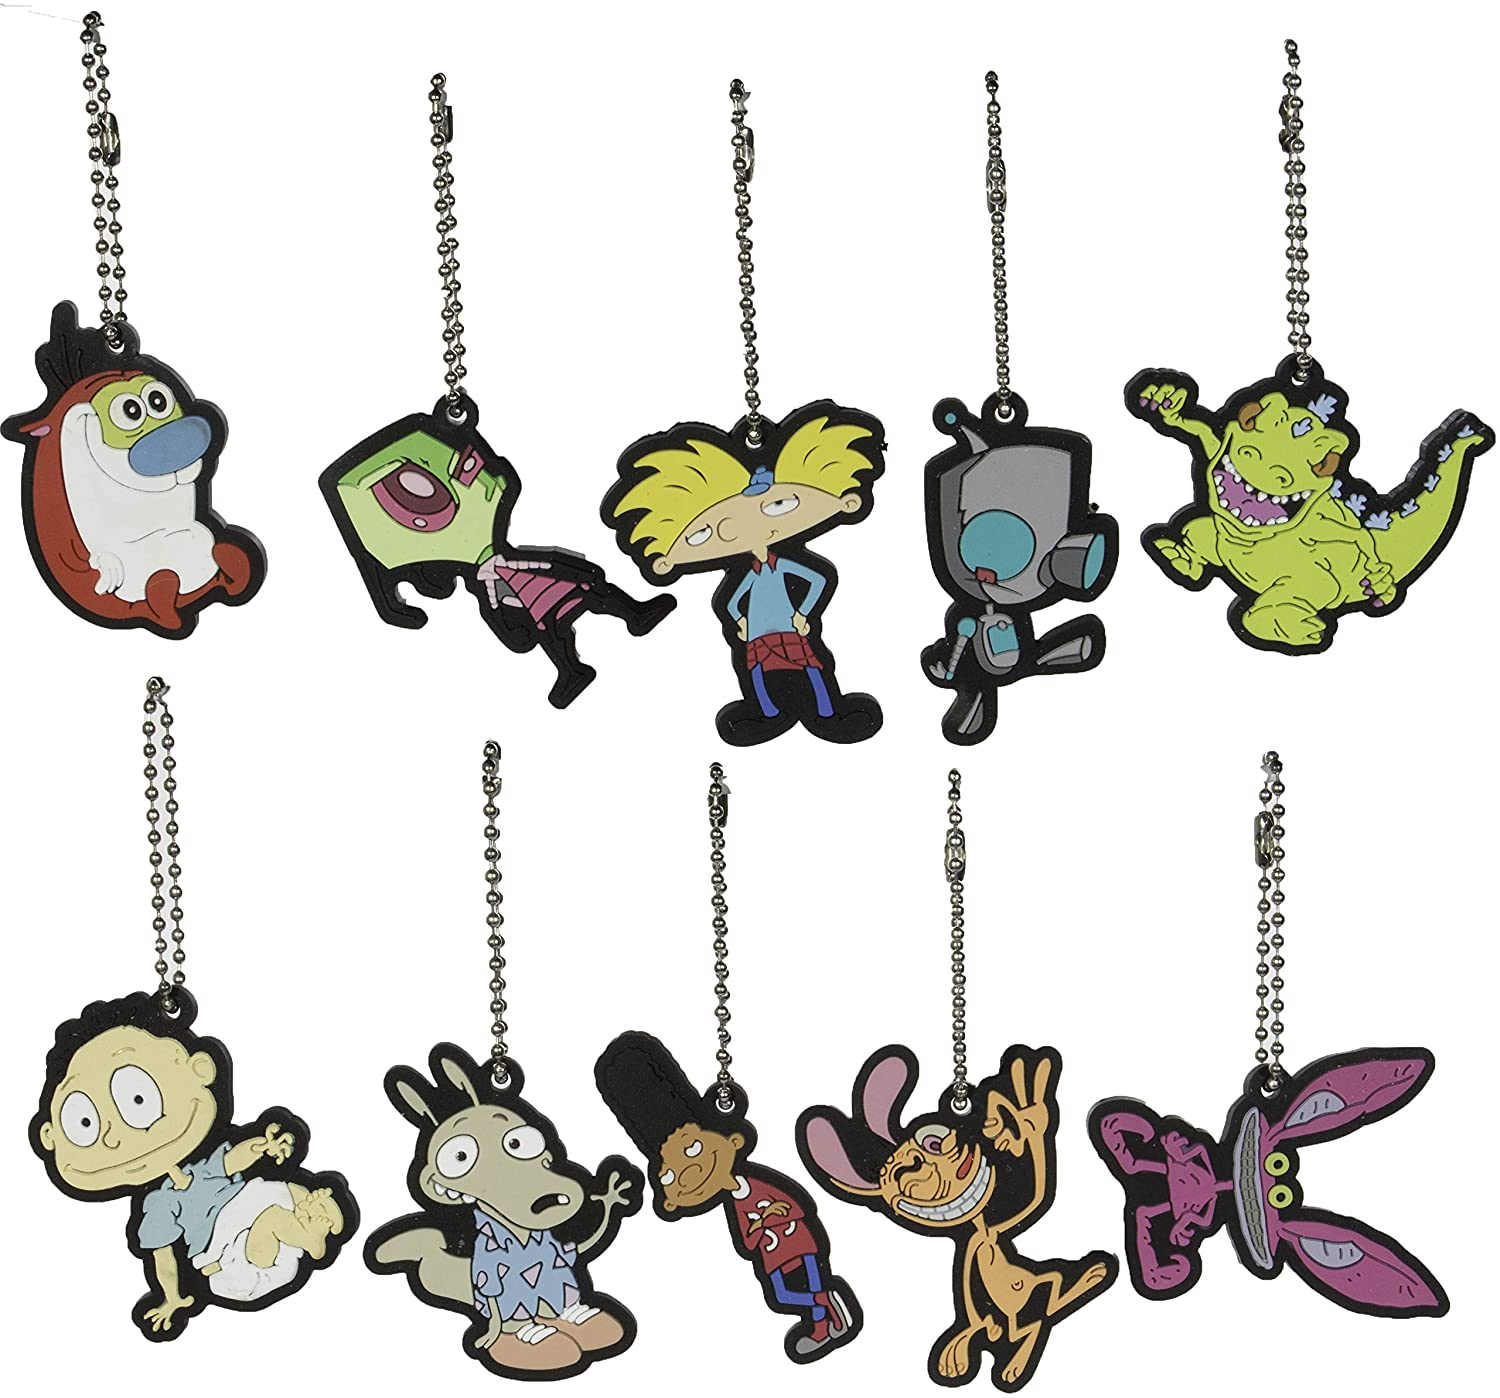 Store On Wheels Party Favors - Nickelodeon Nick 90s Key Chains/Charms Set of 10 Pieces